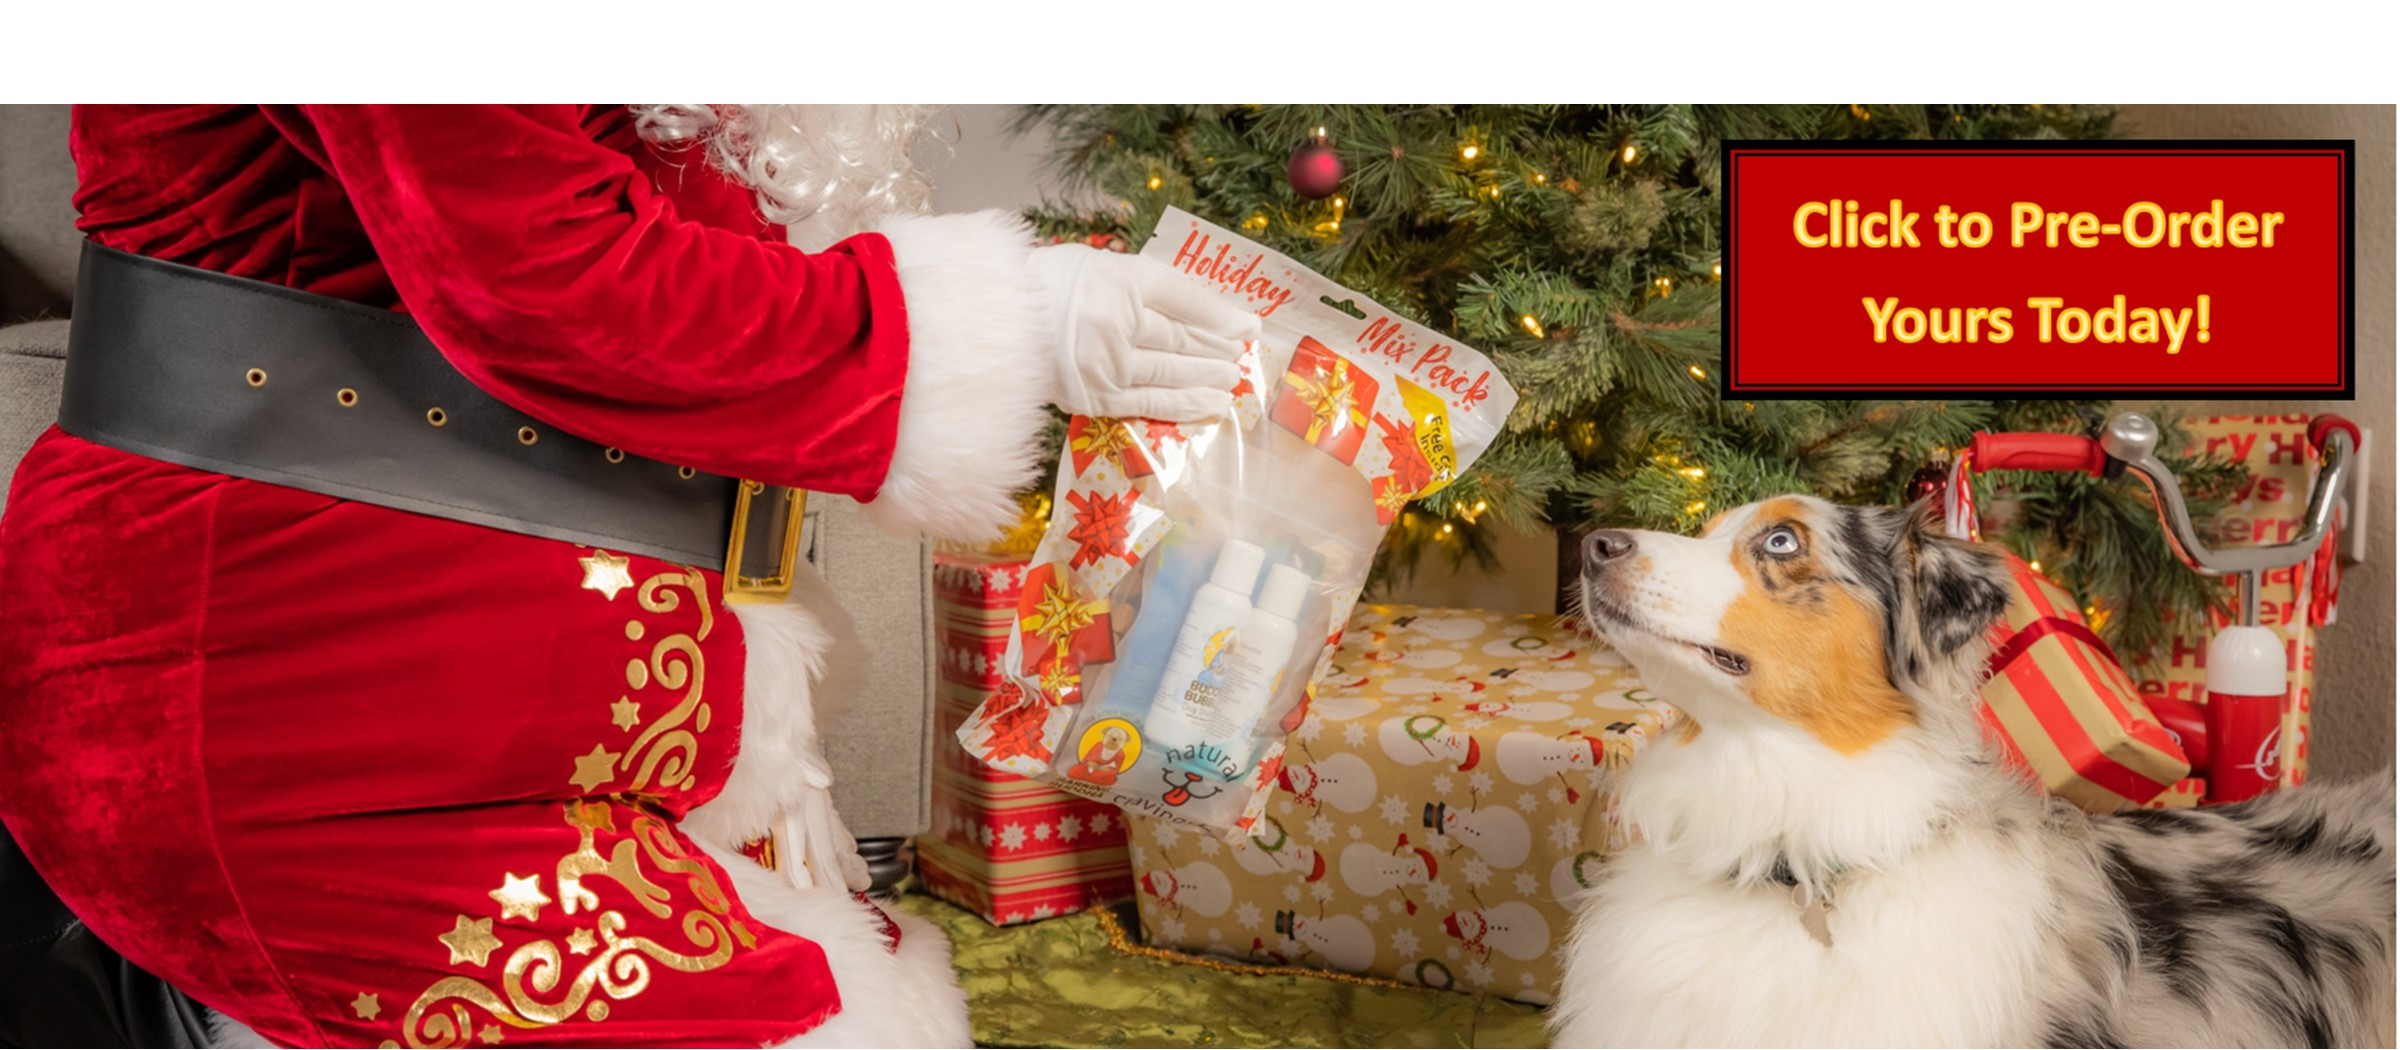 Santa Claus Giving Dog a Natural Cravings Holiday Mix Pack Gift for Dogs